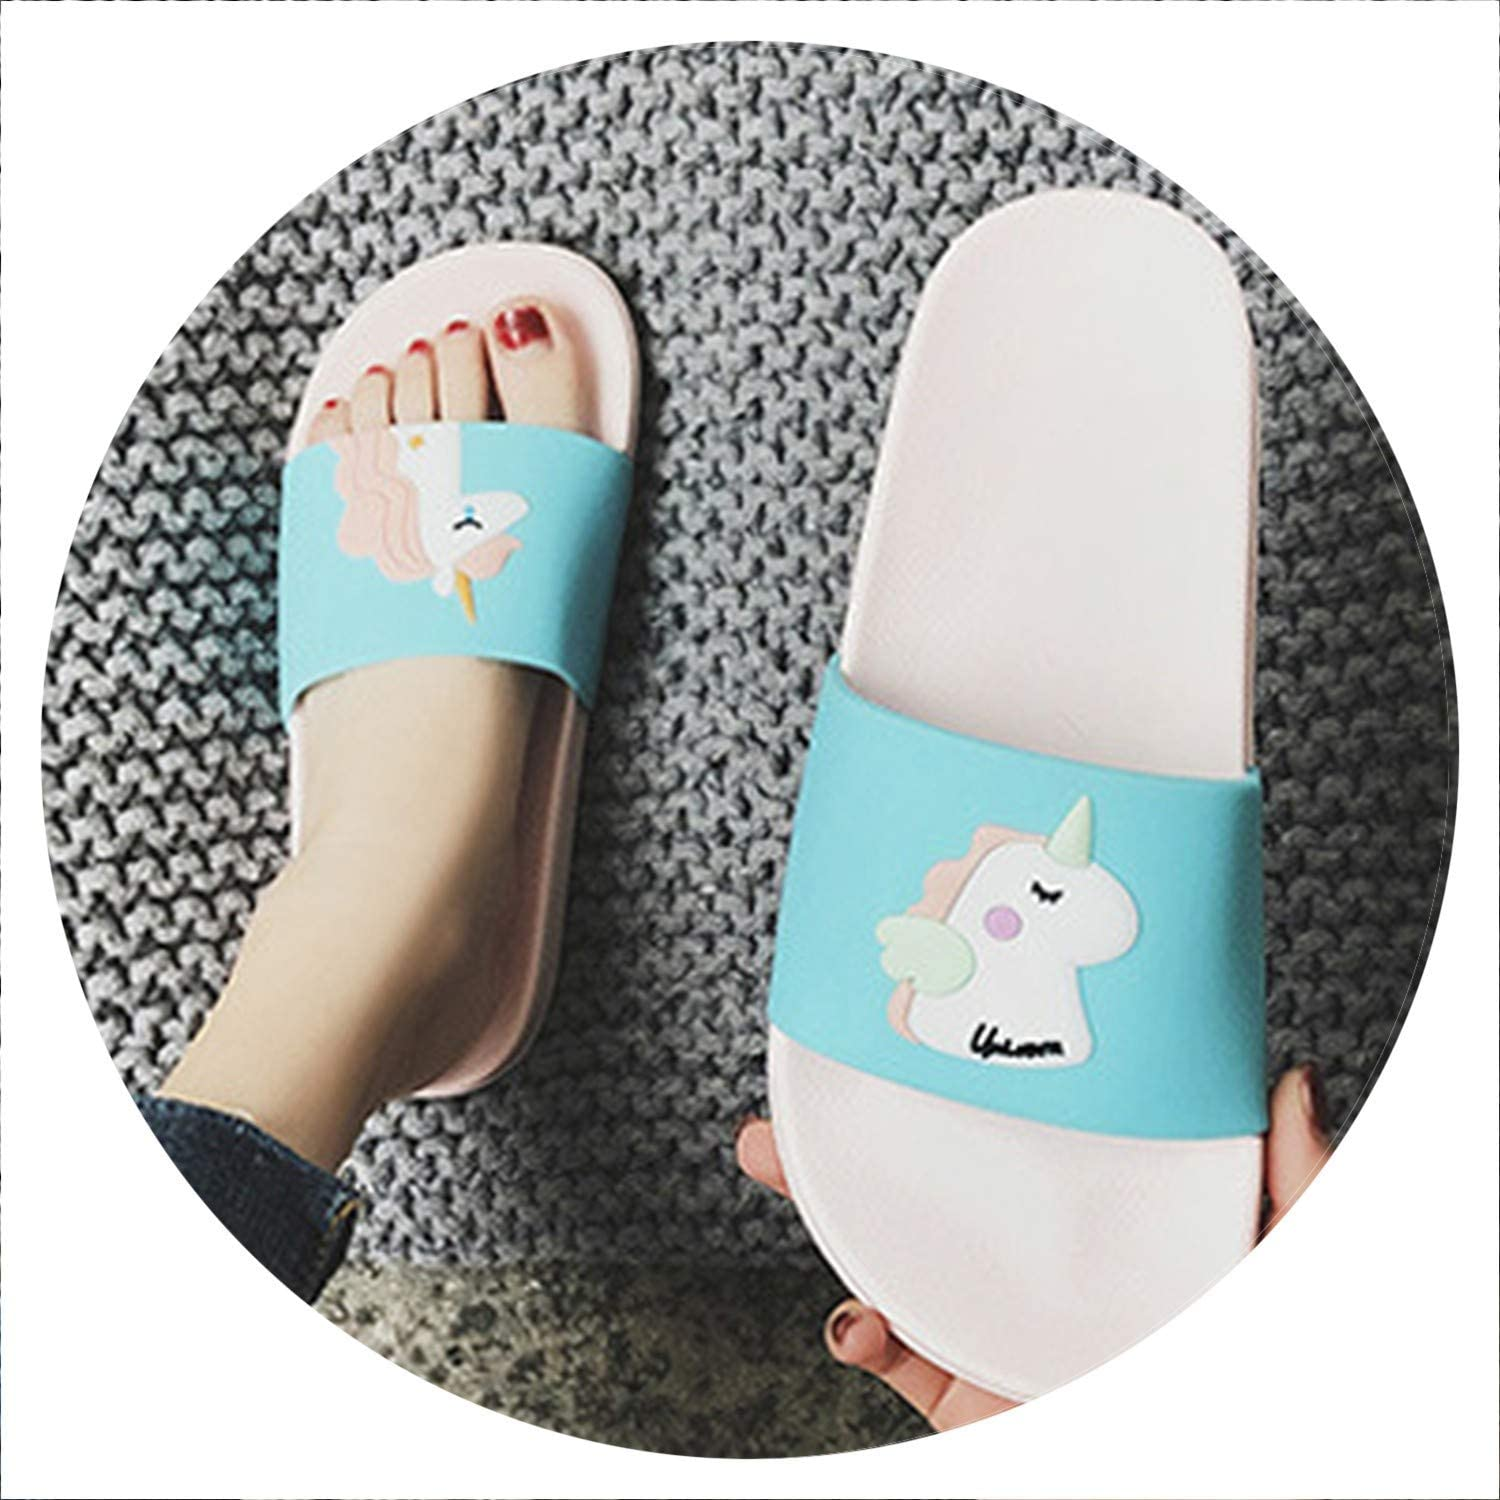 Glad You Came Summer Slippers Women shoes Badslippers Indoor Slippers Flip Flops Bathroom Winter Home Slippers shoes Woman Zapatillas de women,6277-11,8